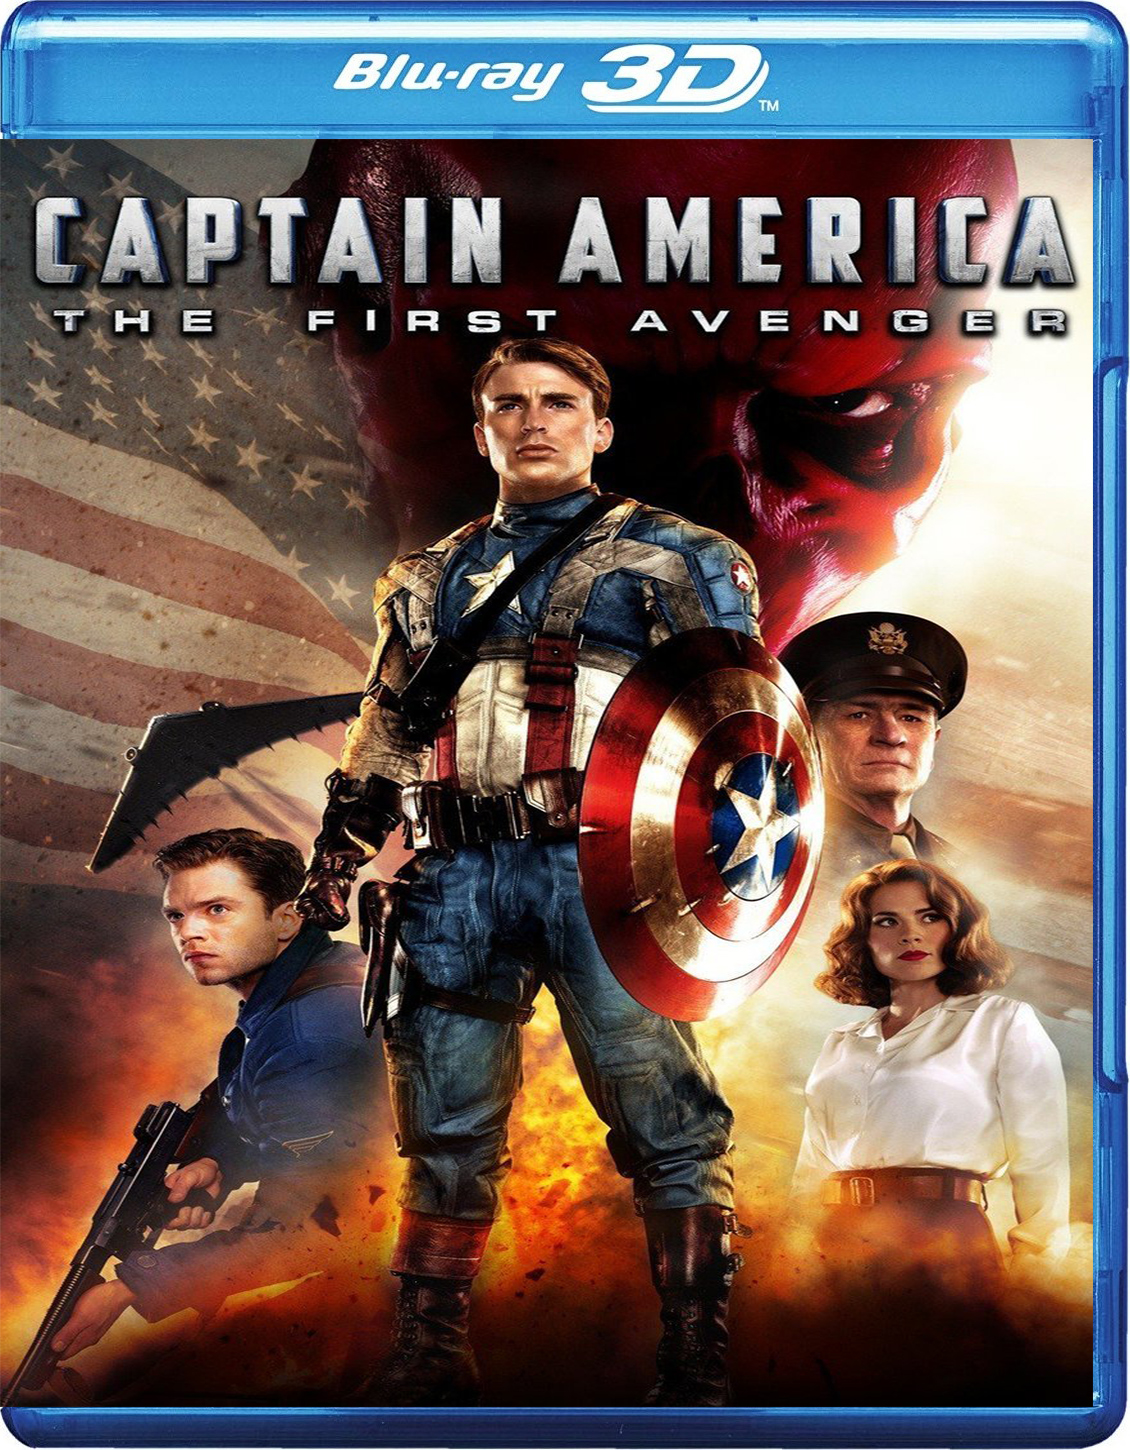 Captain America: The First Avenger [2011] [BD50] [Español] [3D]